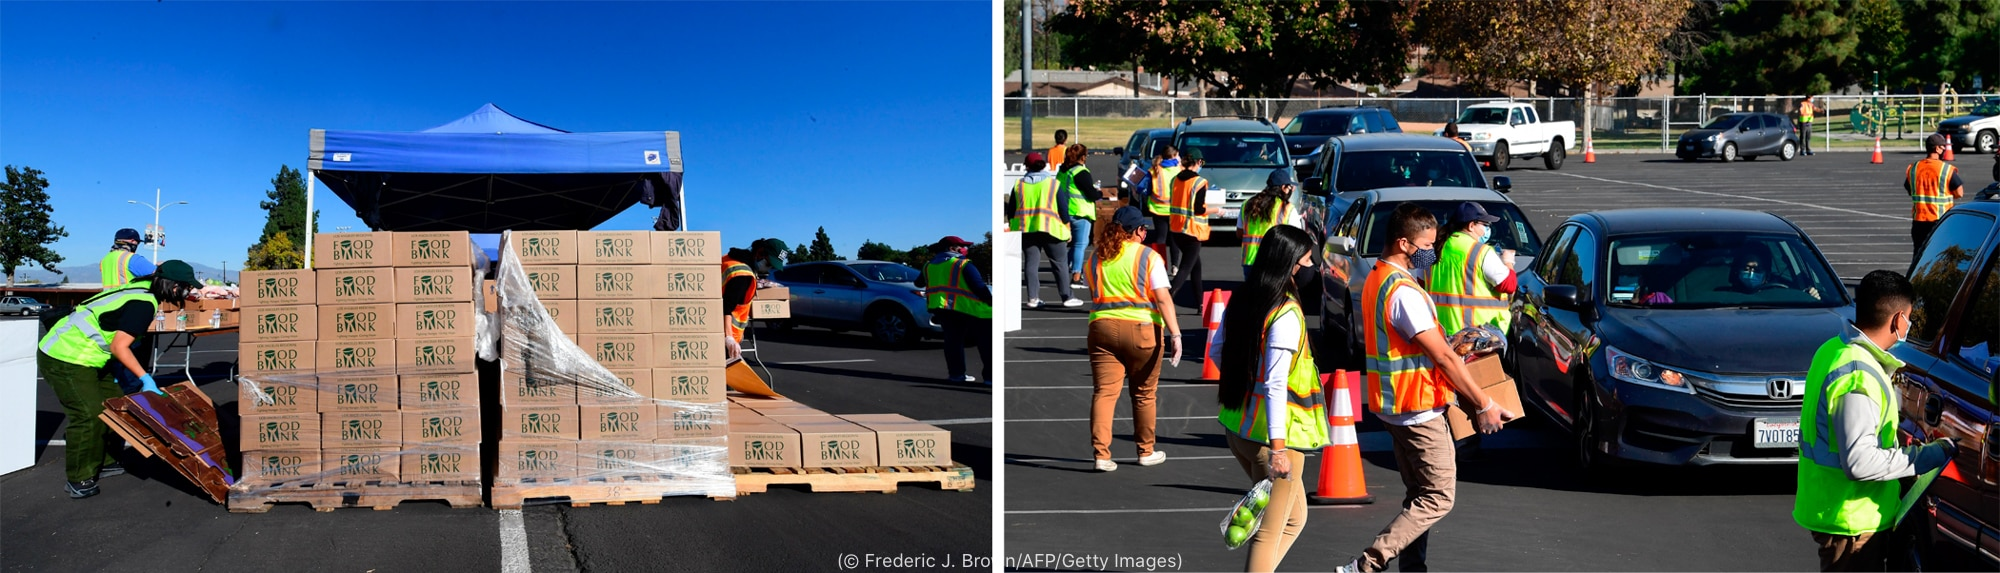 At left, person unloading boxes from pallet. At right, people with boxes and bags walking toward line of parked cars (© Frederic J. Brown/AFP/Getty Images)